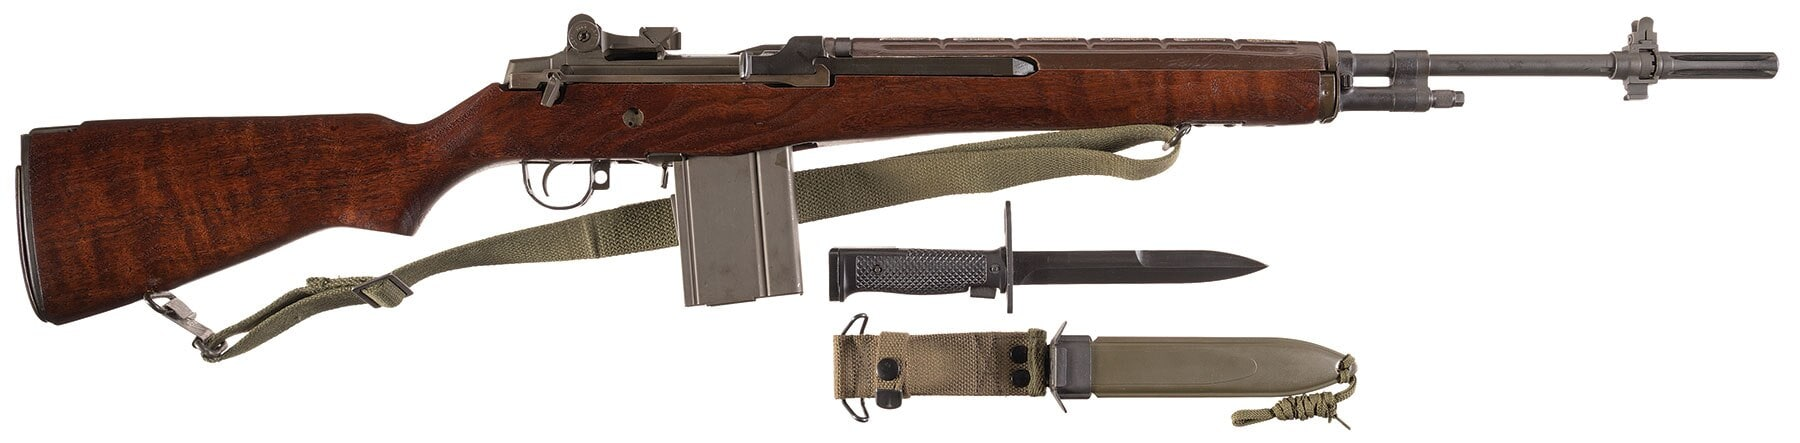 If you want an actual factory original M14 battle rifle, they also have this H&R formerly used by the Department of Energy. Estimated Price: $22,500 - $35,000